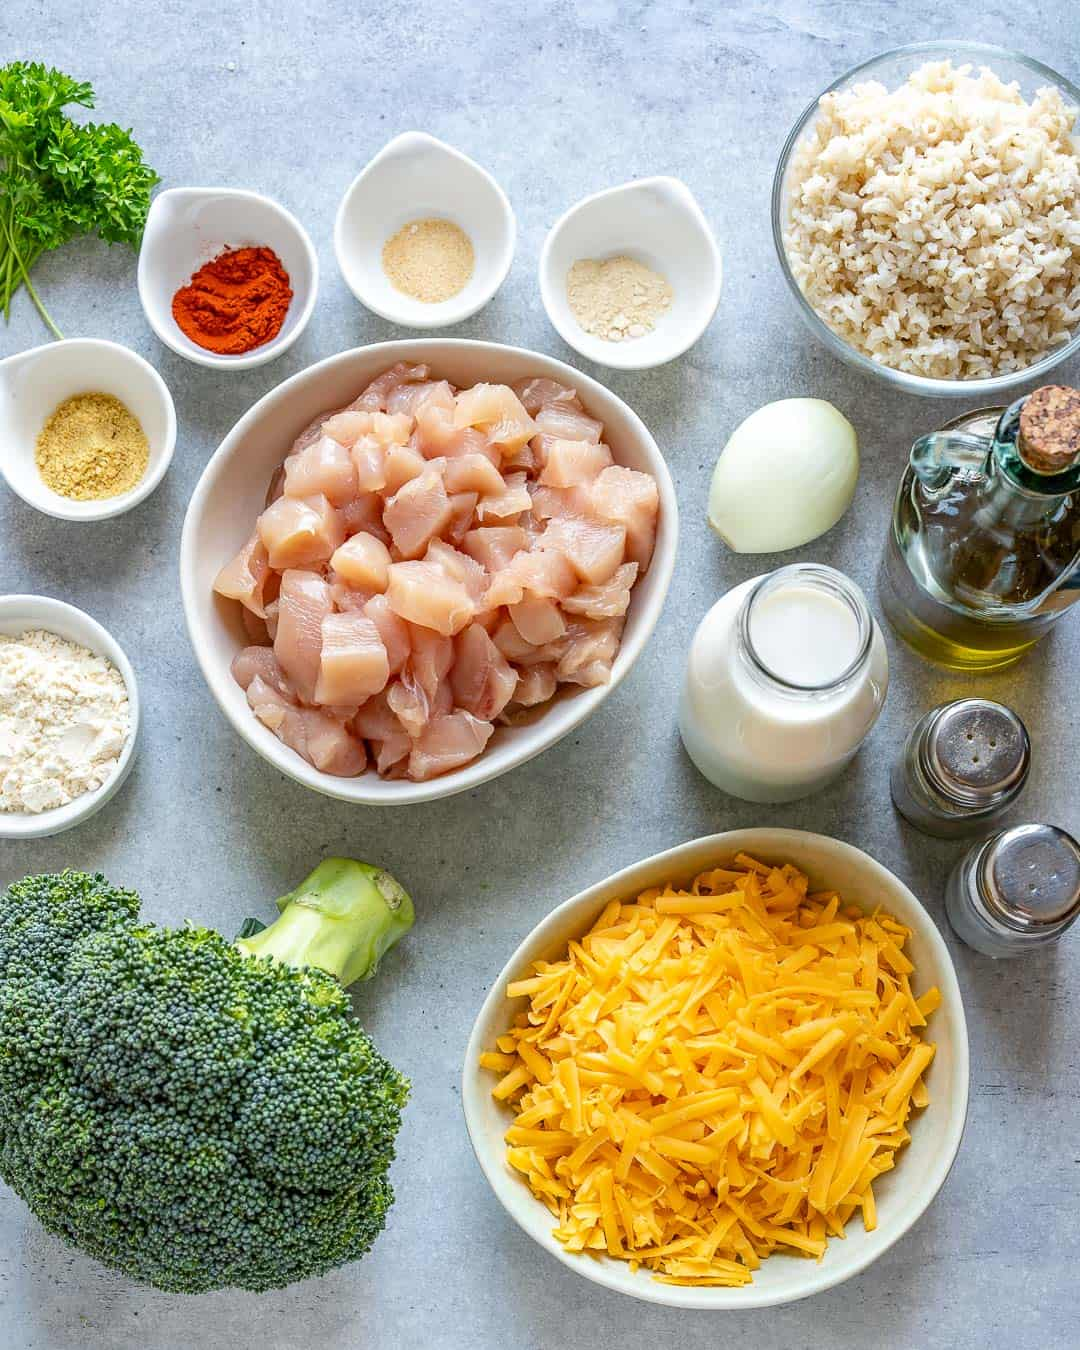 Ingredients for chicken & broccoli casserole on counter